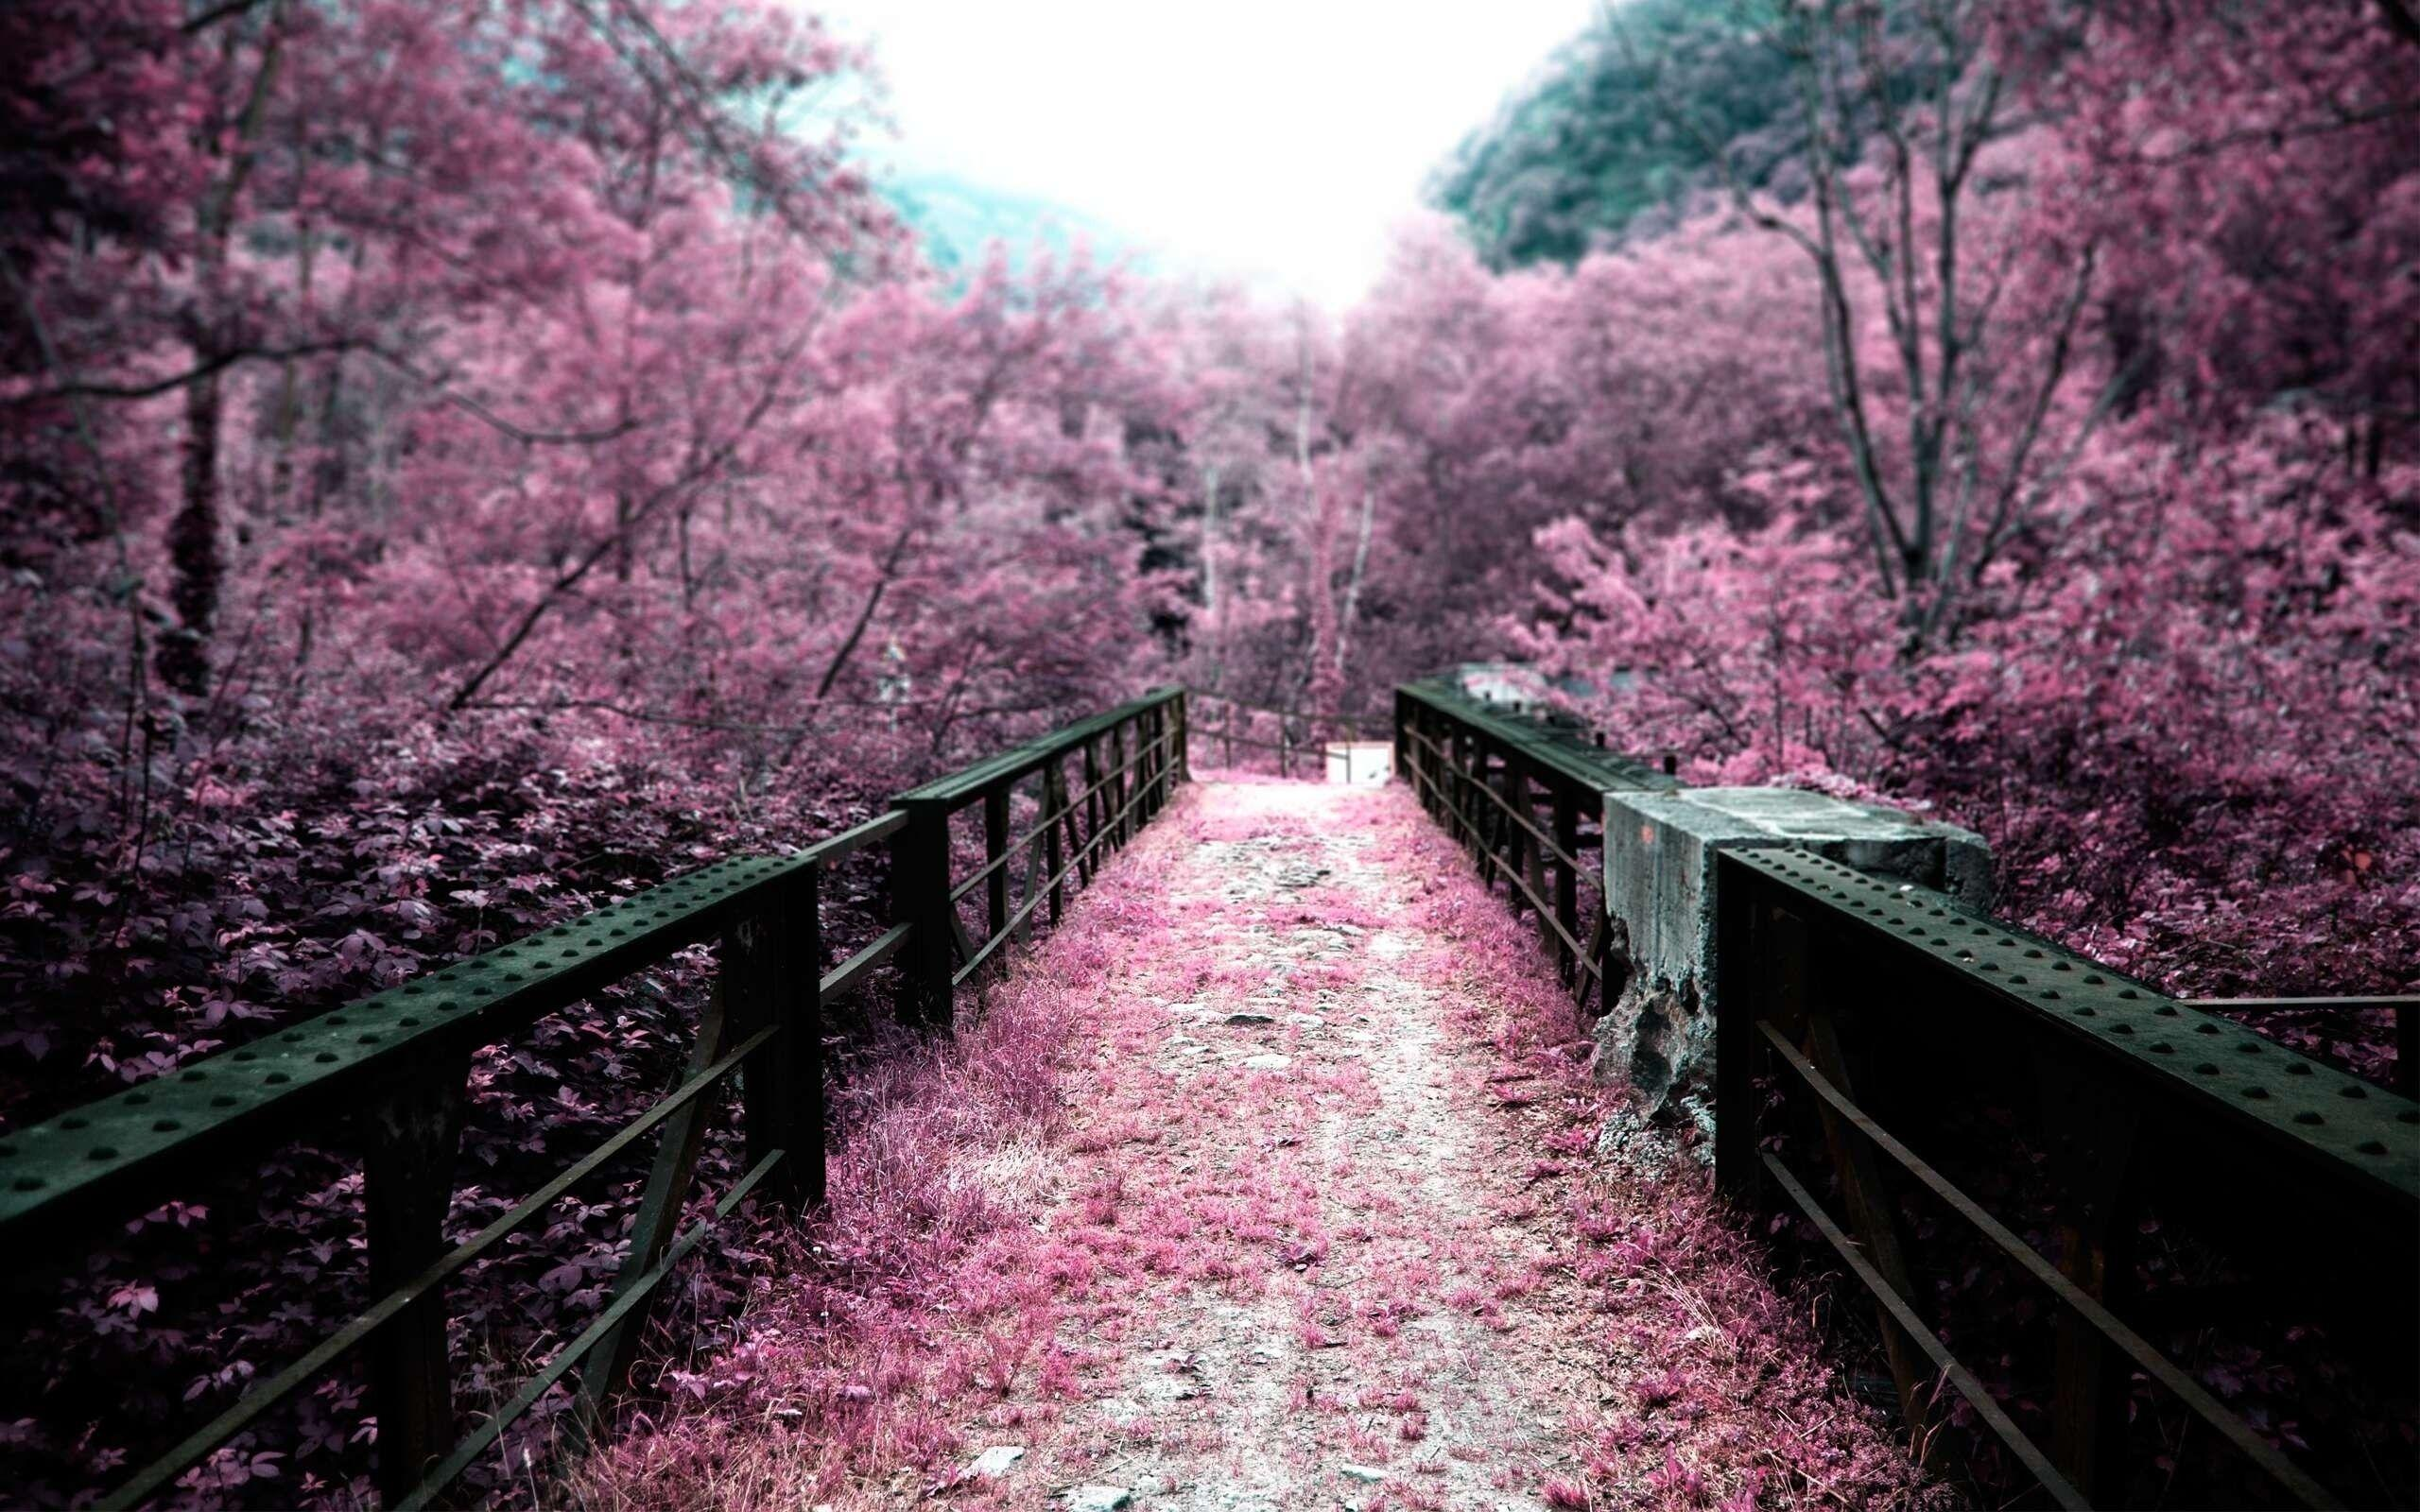 Cherry blossoms bridges depth of field selective coloring pink ...